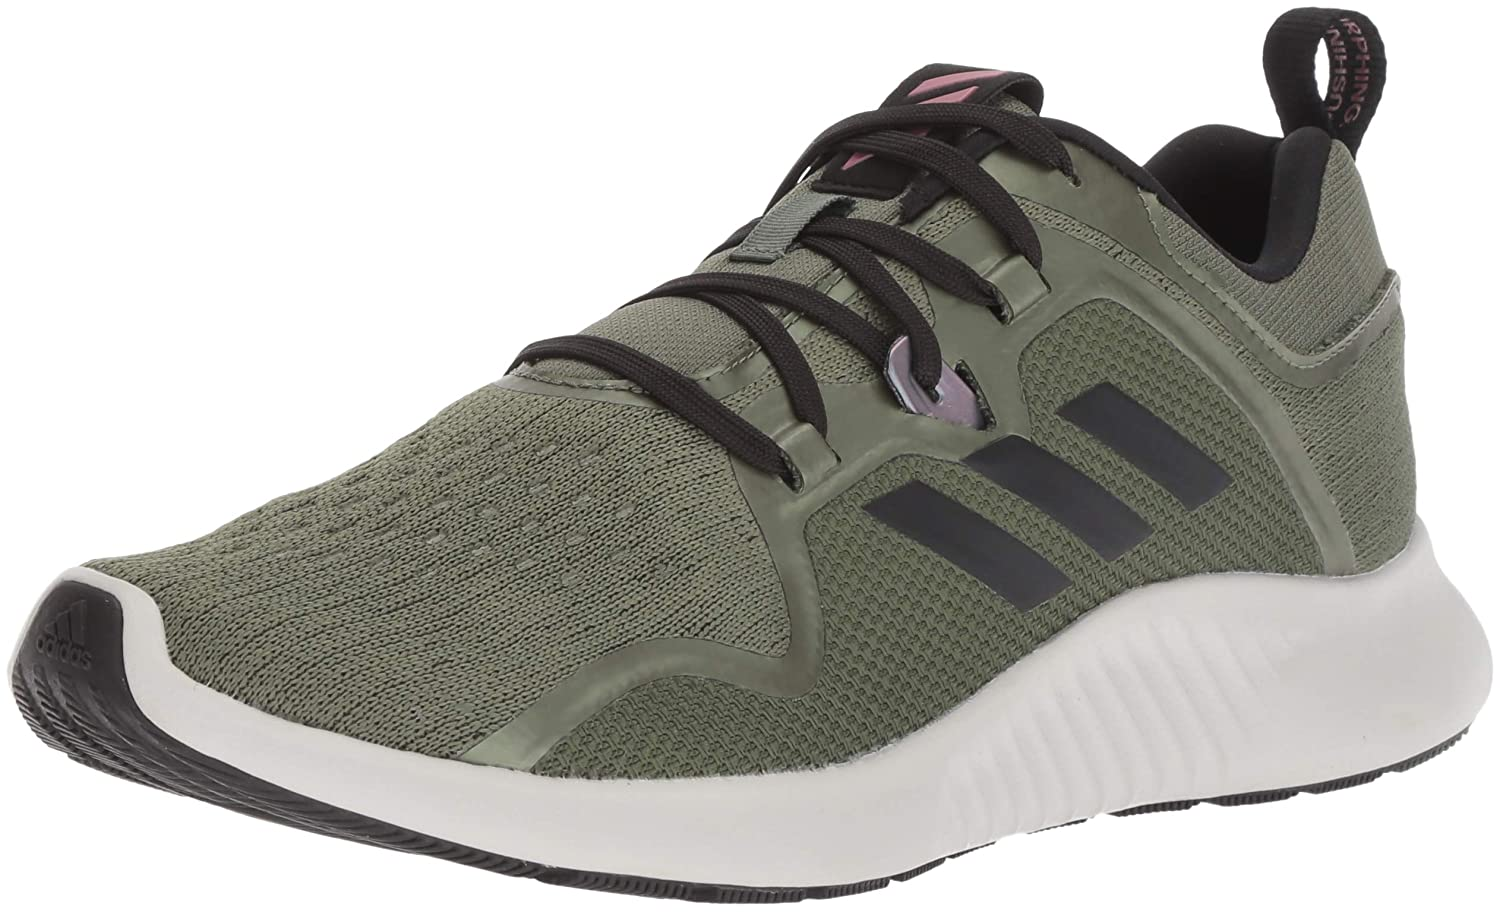 Base Green Black Trace Maroon Adidas Womens Edgebounce Running shoes